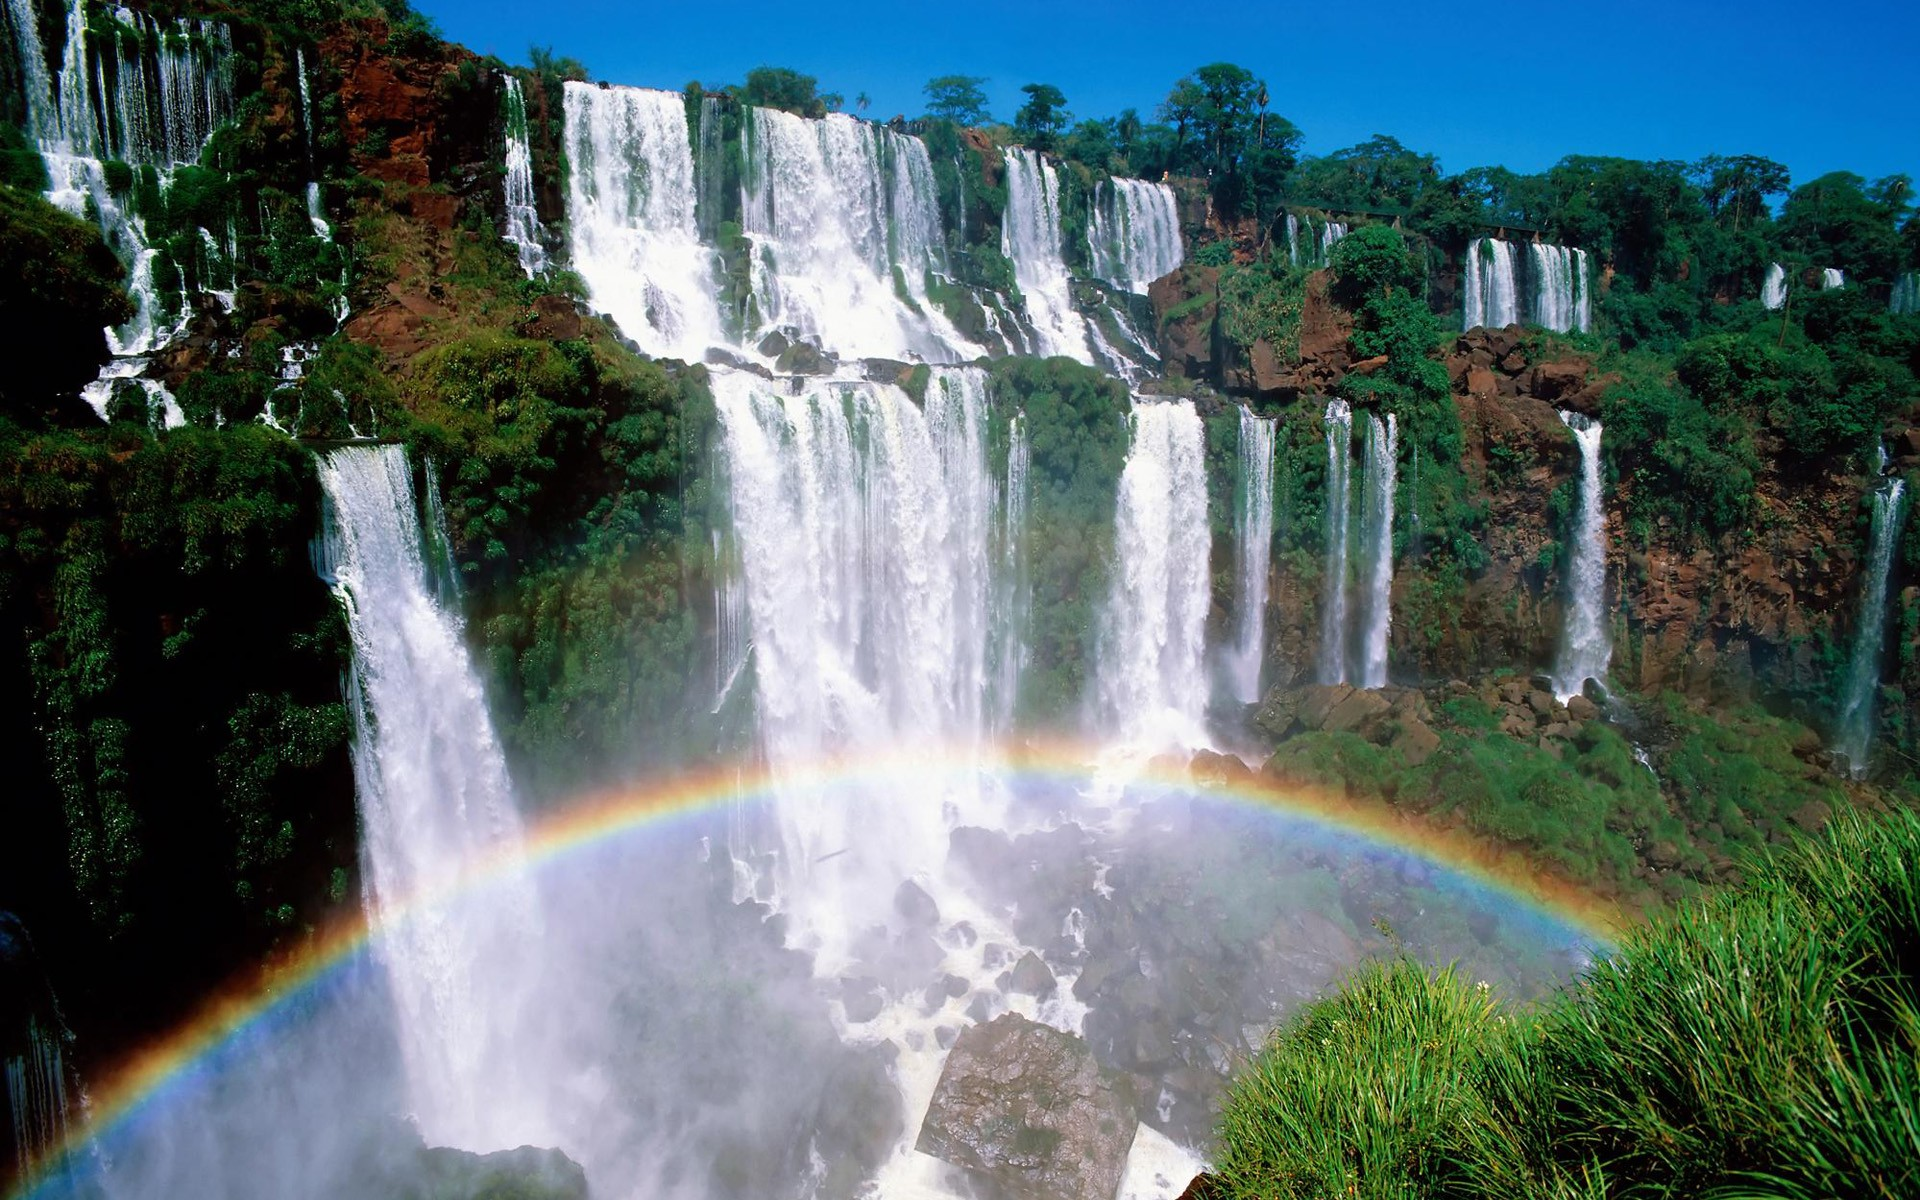 What if your biz went off like this waterfall?